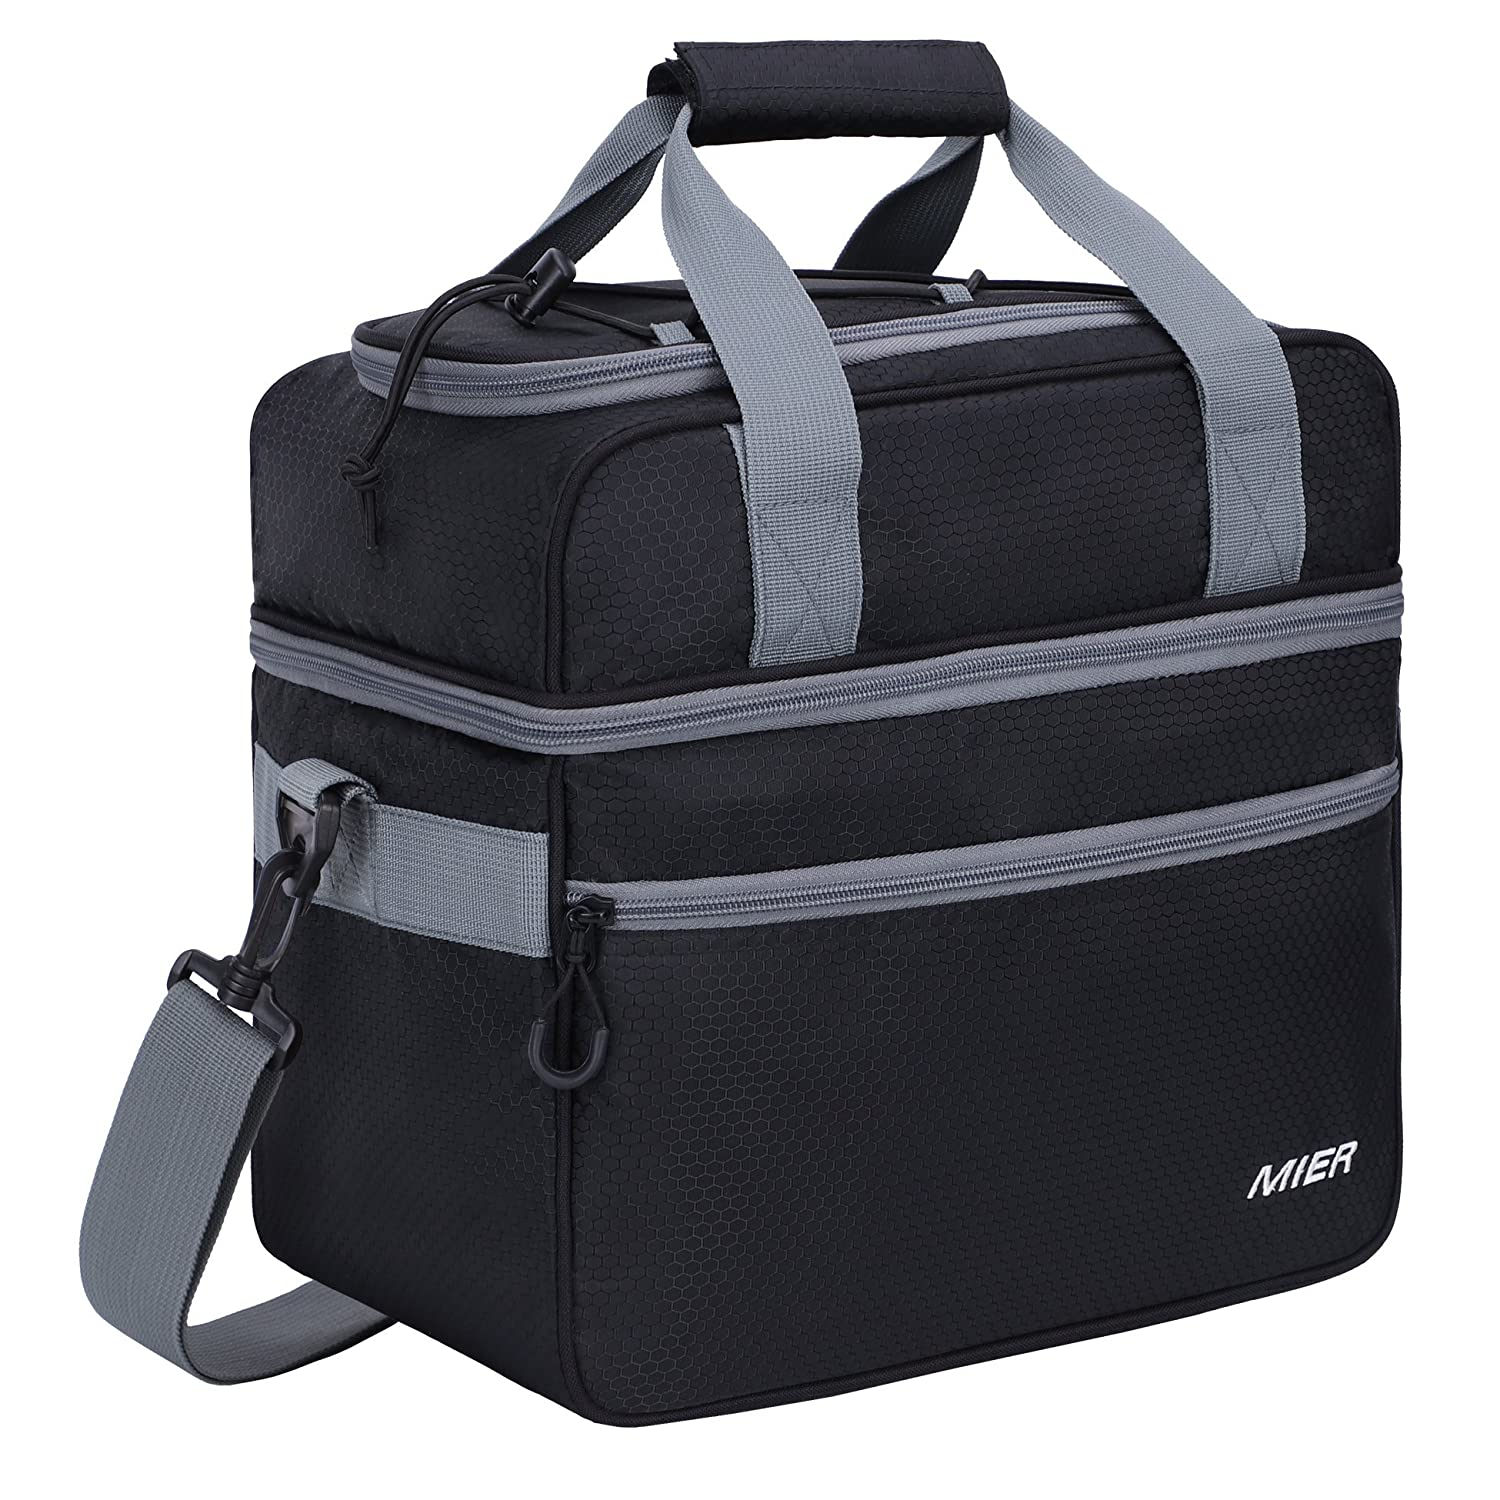 MIER Double Compartment Cooler Bag Large Insulated Bag Lunch, Picnic, Beach, Grocery, Kayak, Travel, Camping, Black 10100040-207-A